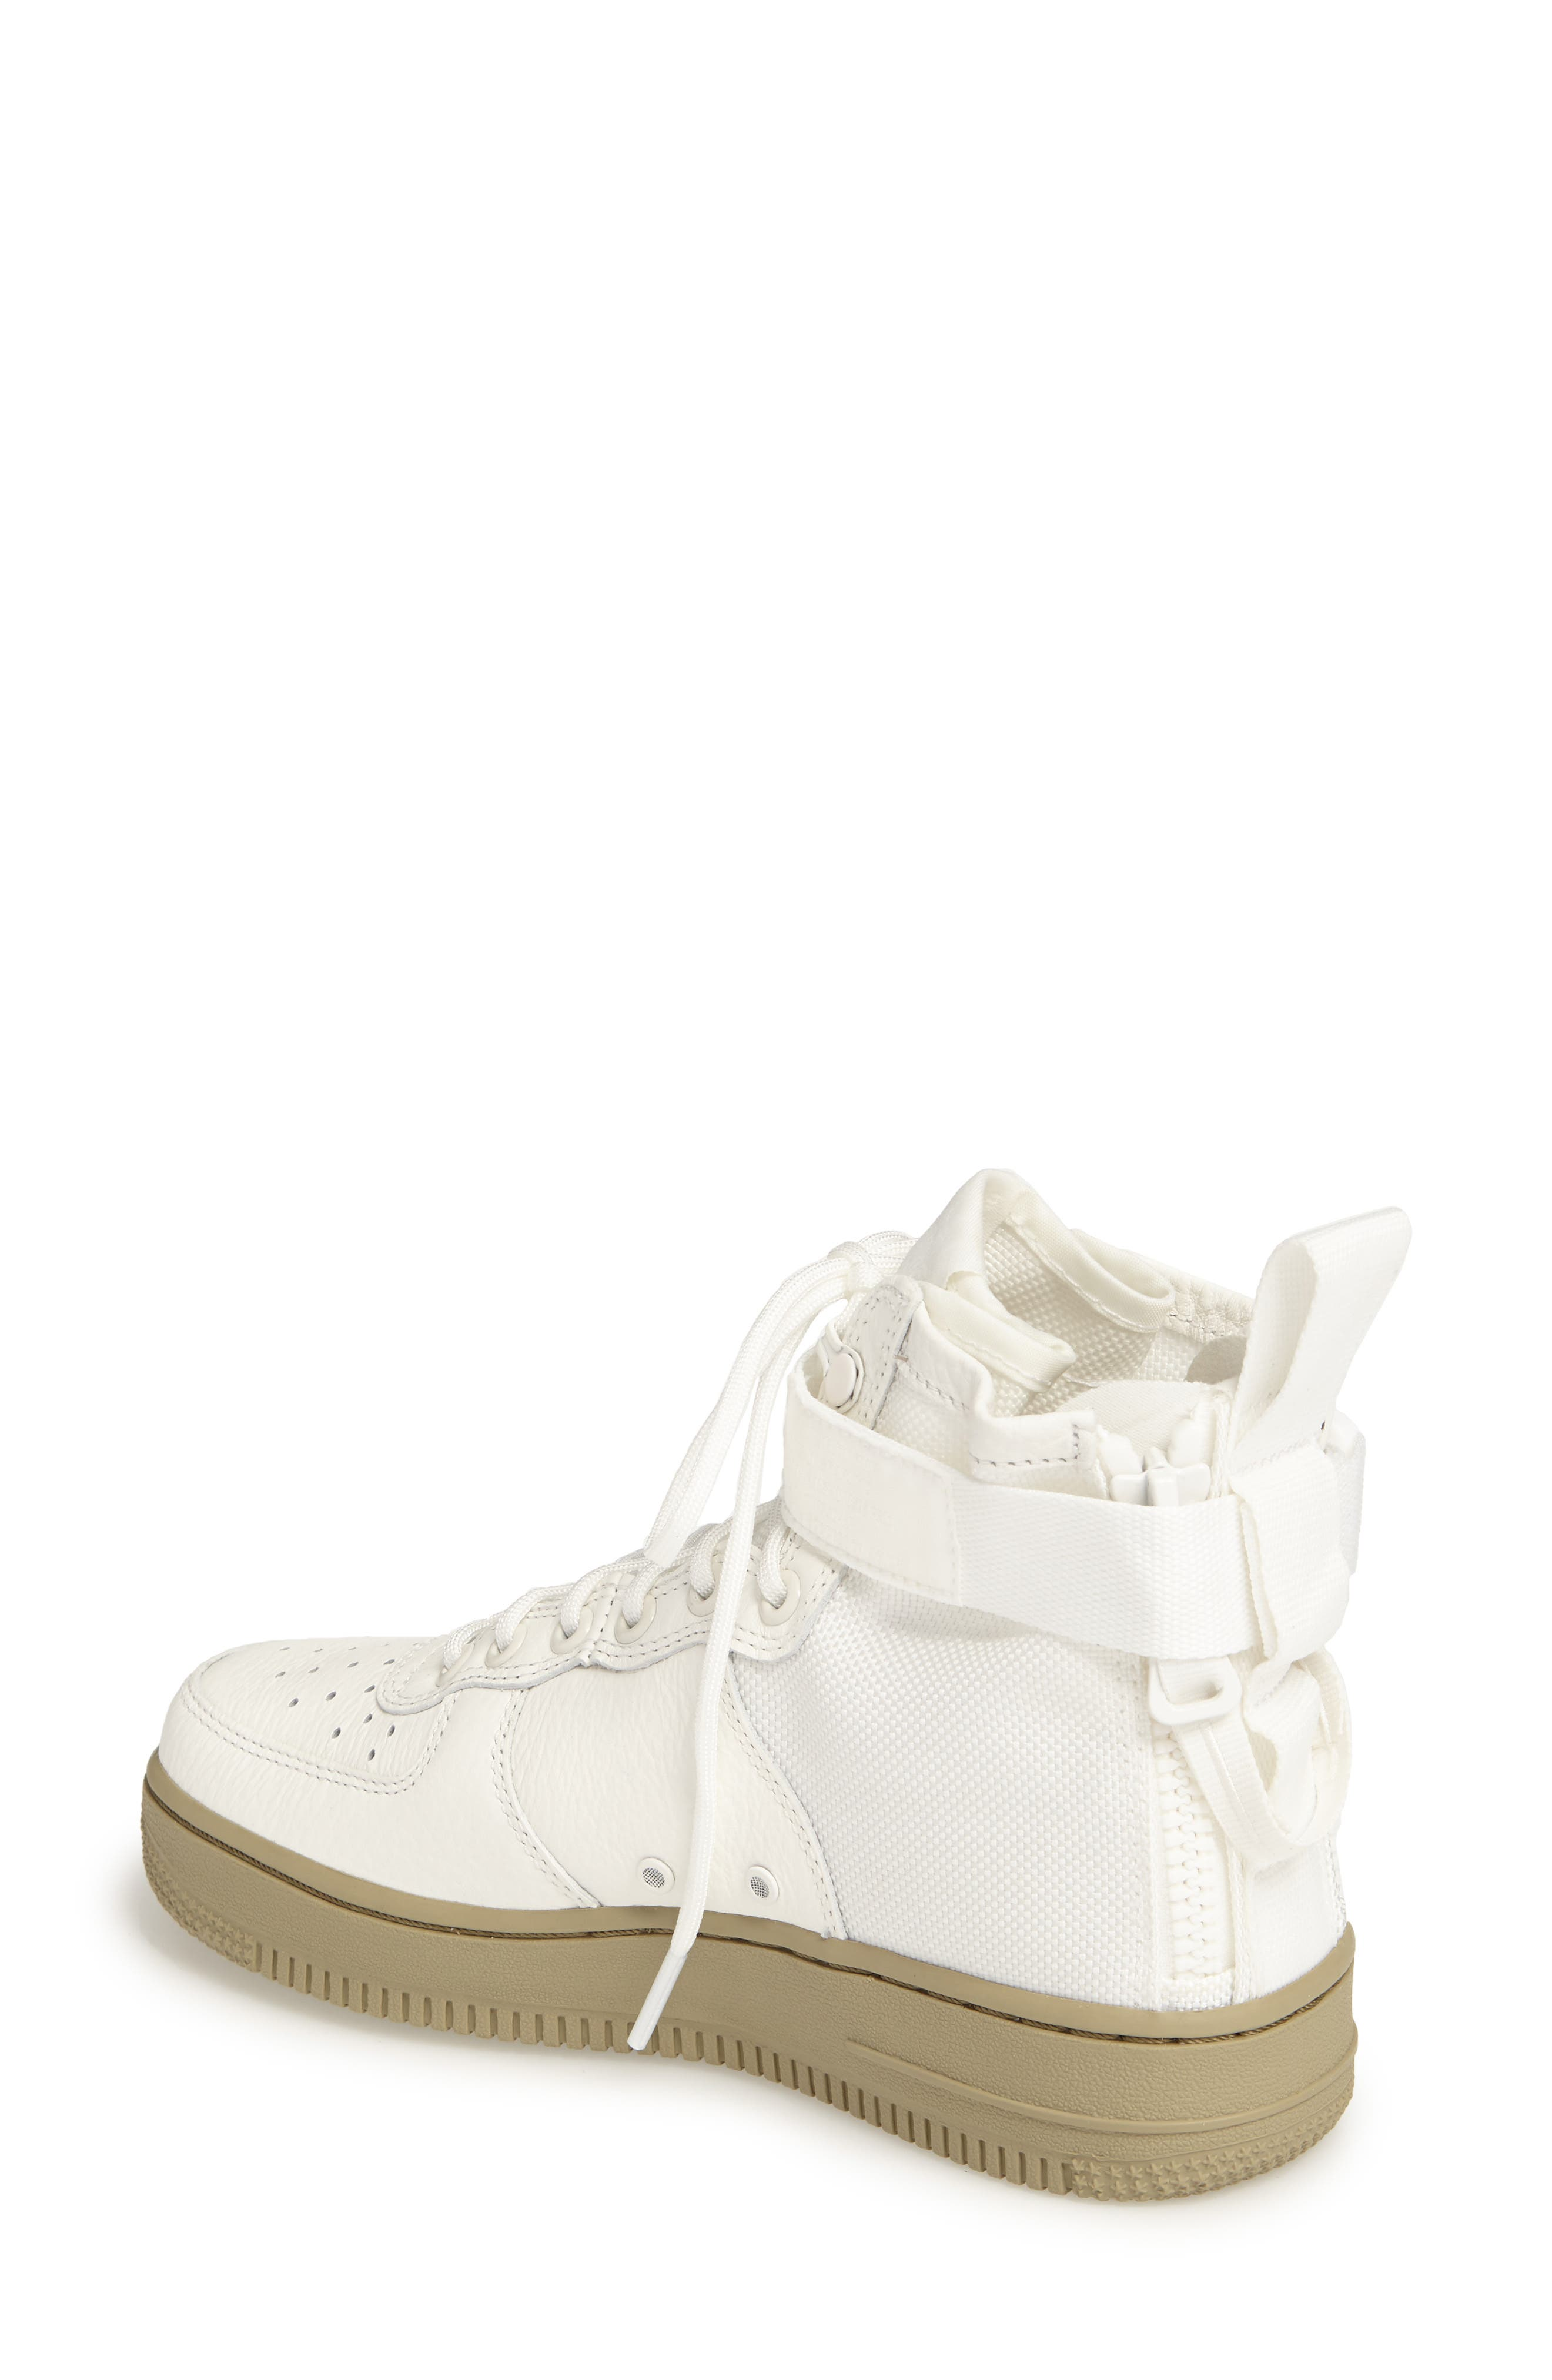 SF Air Force 1 Mid Sneaker,                             Alternate thumbnail 2, color,                             IVORY/IVORY-MARS STONE